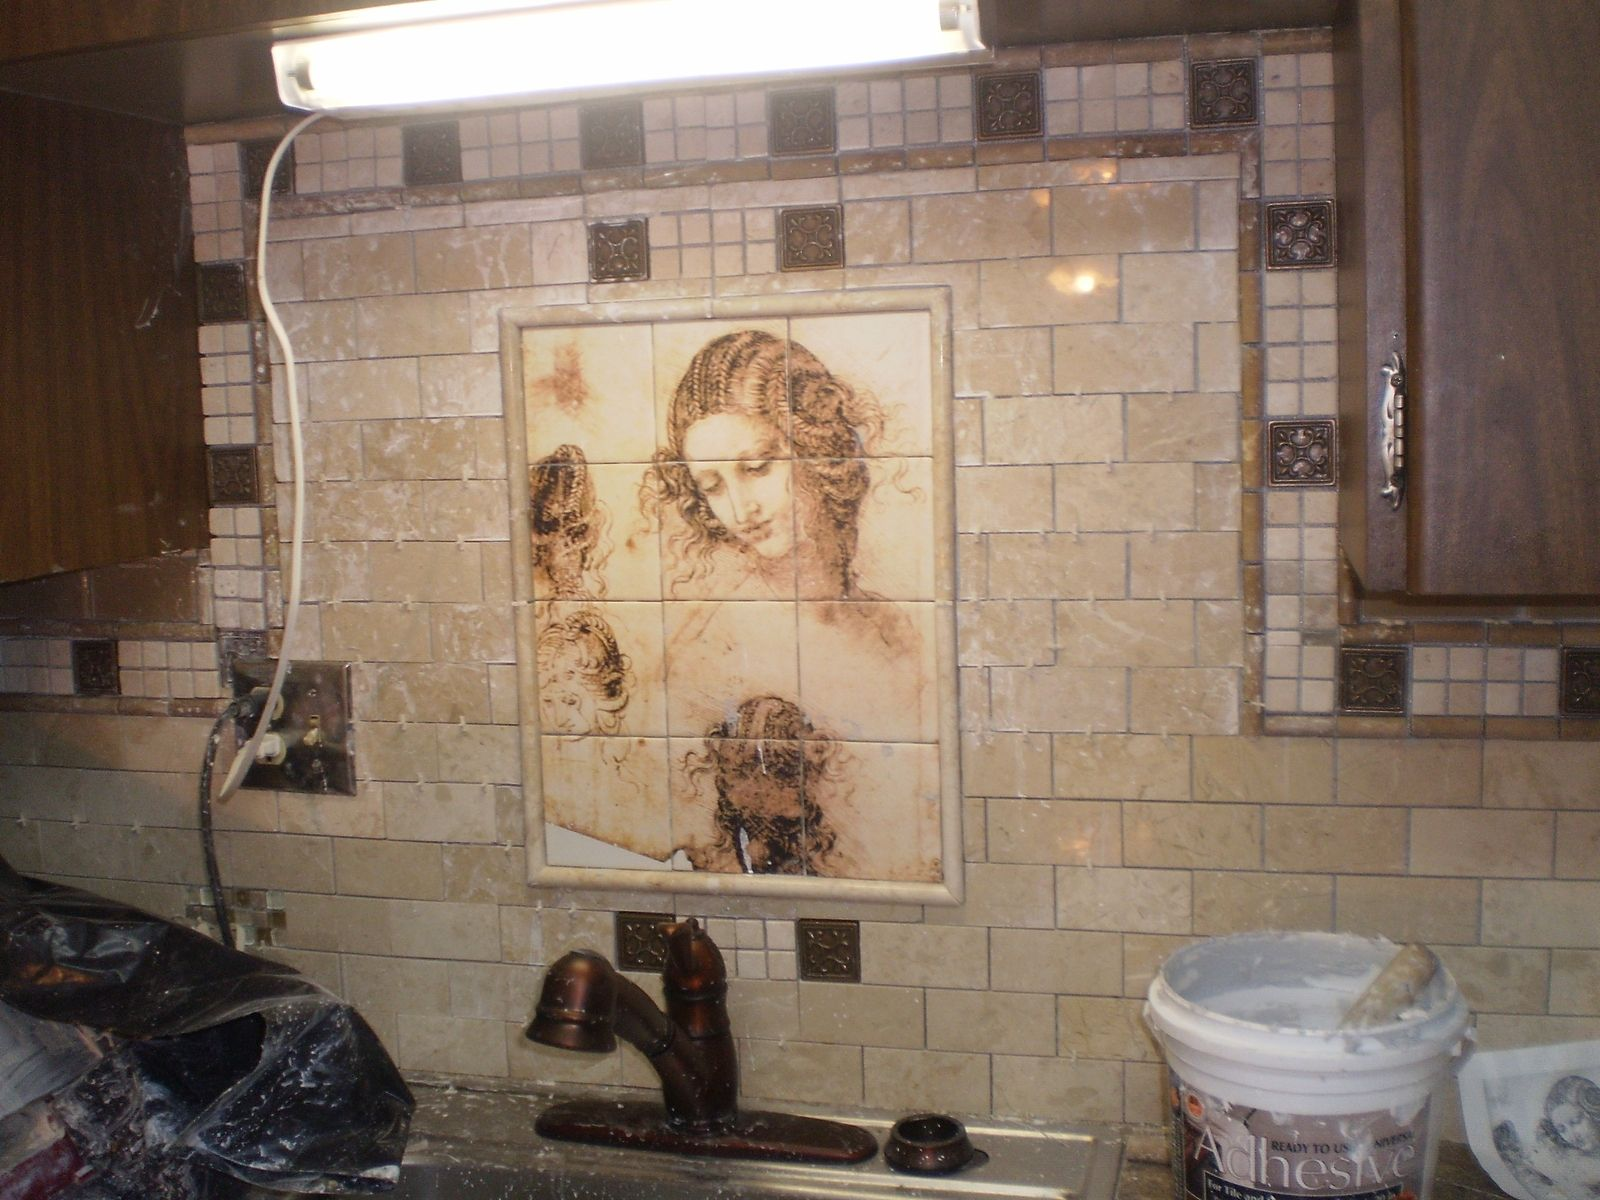 Handmade ceramic or marble kitchen tile mural by flekman for Ceramic mural tiles